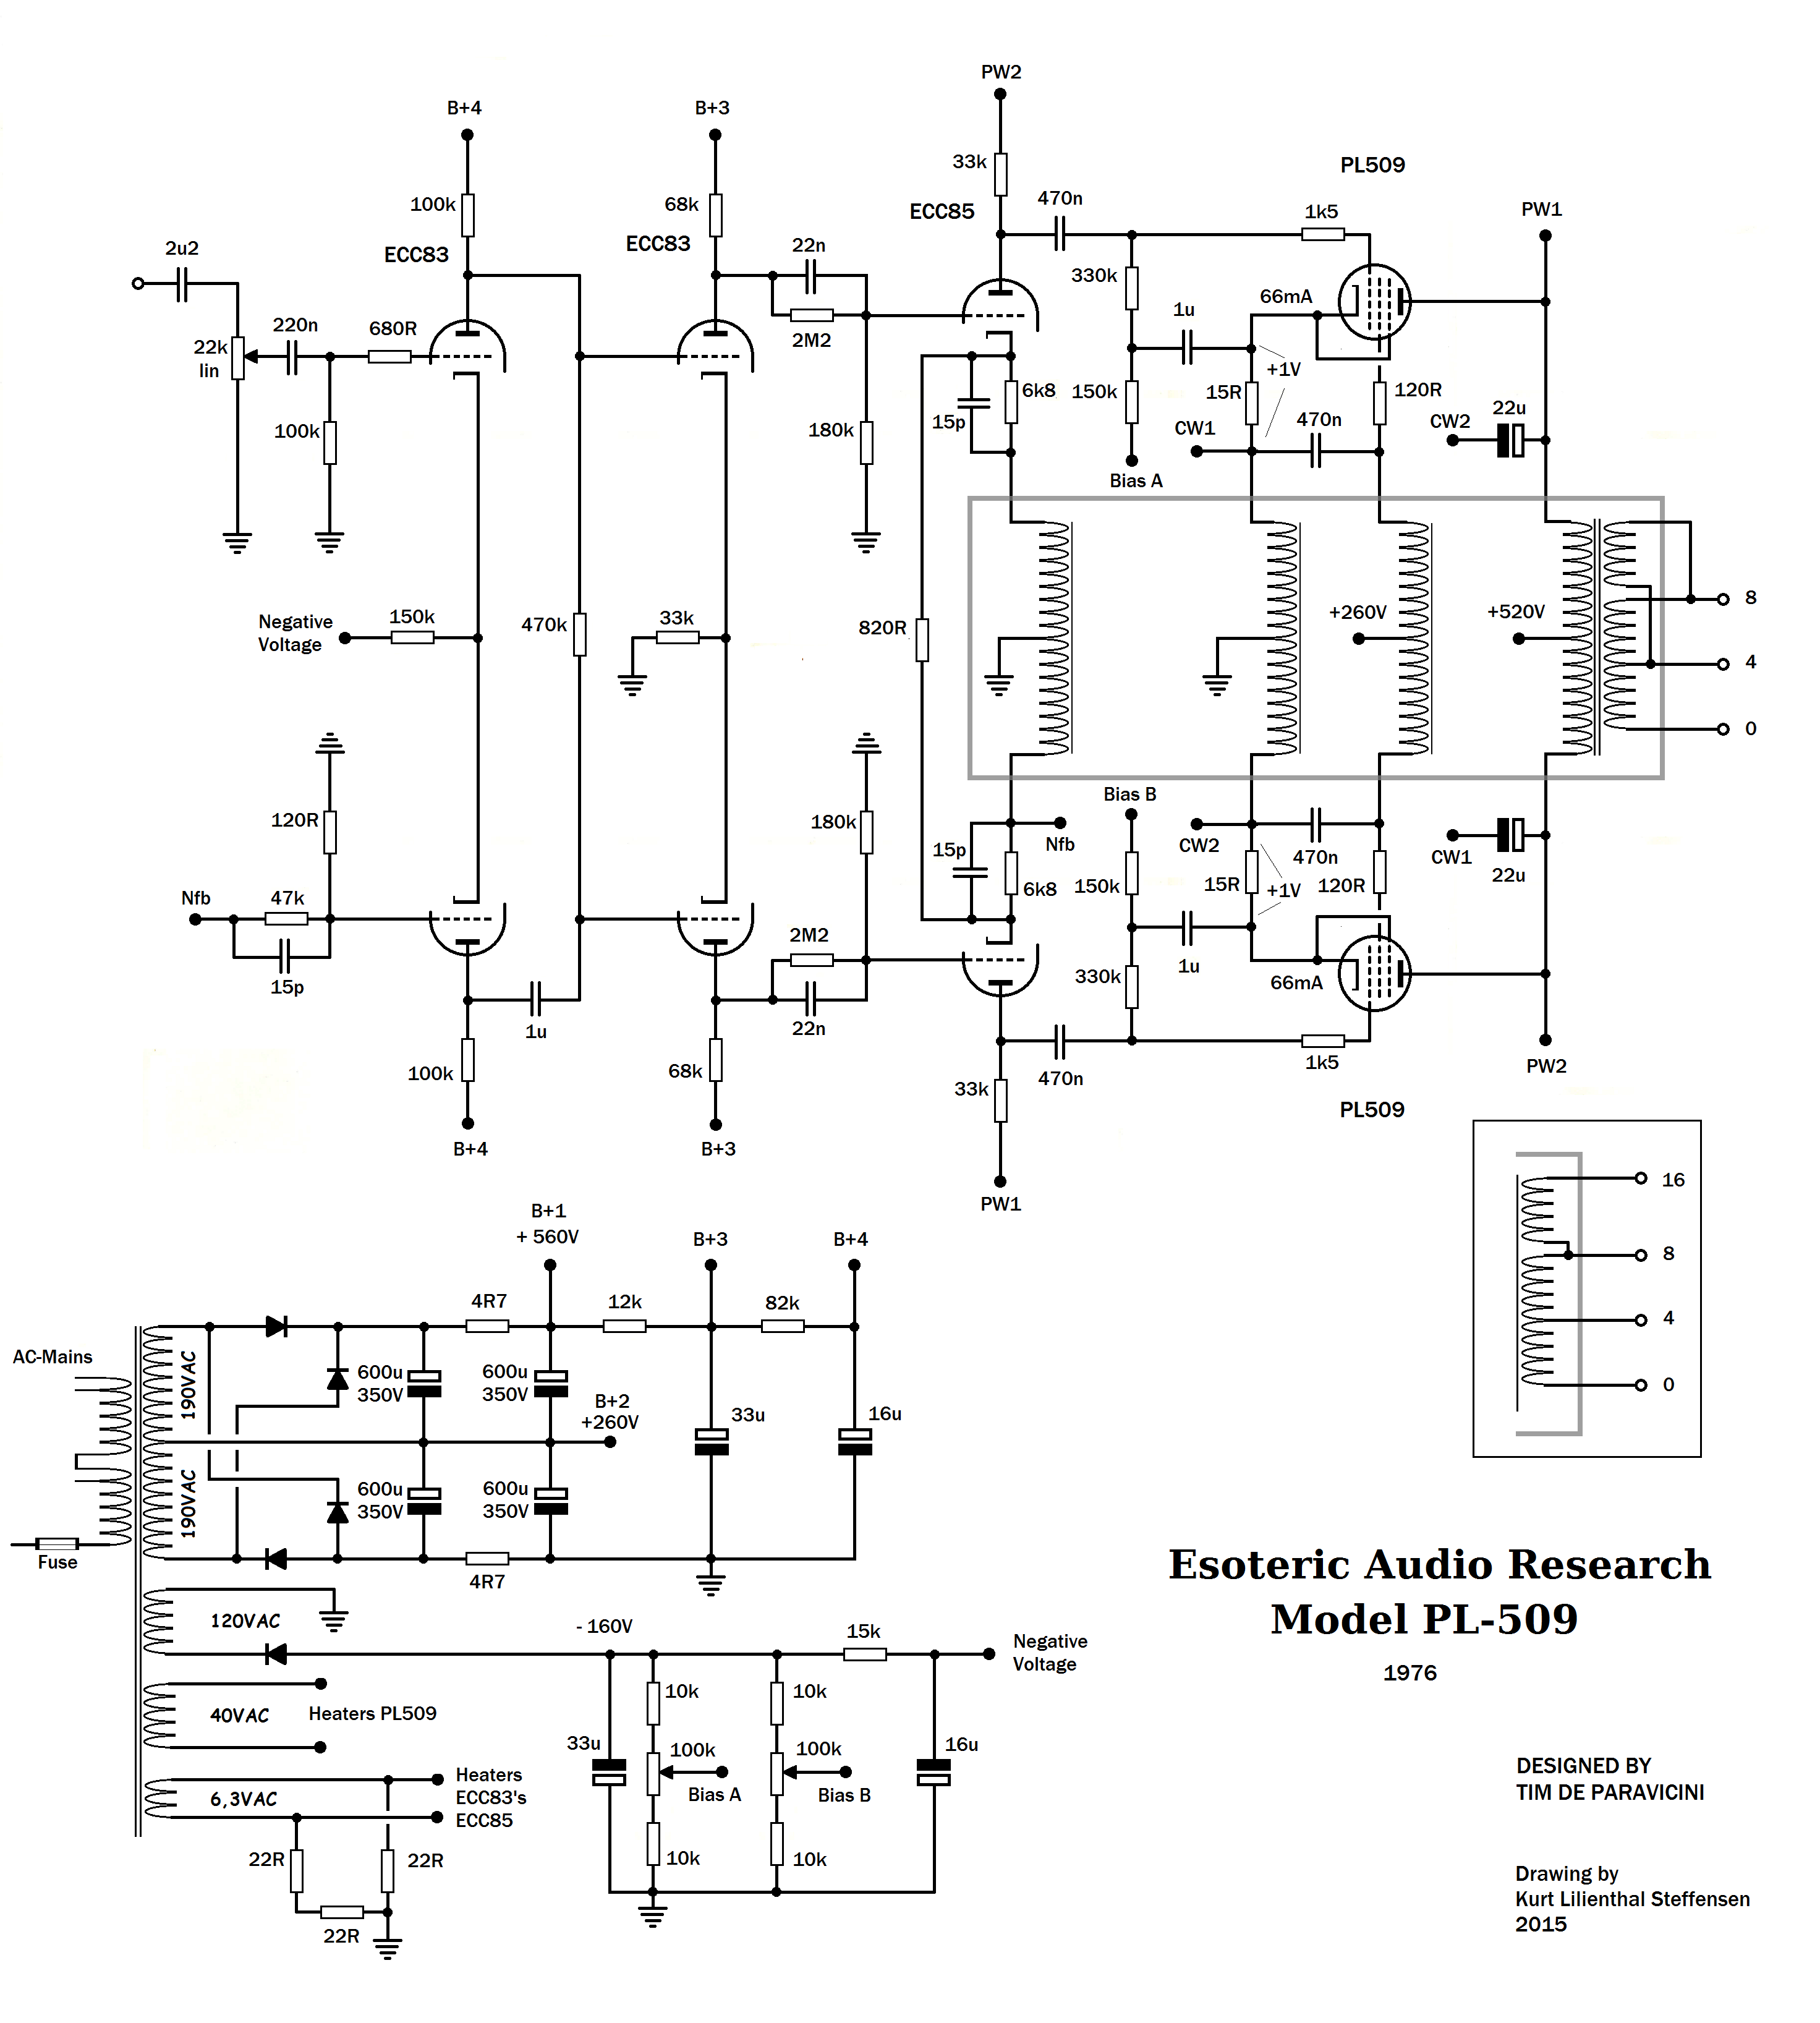 100 Amplifiers Part 4 1959 82 Lilienthal Engineering Beam Circuits Quad Opamp Walker Ear Pl509 Ed The Circuit Of Amplifier